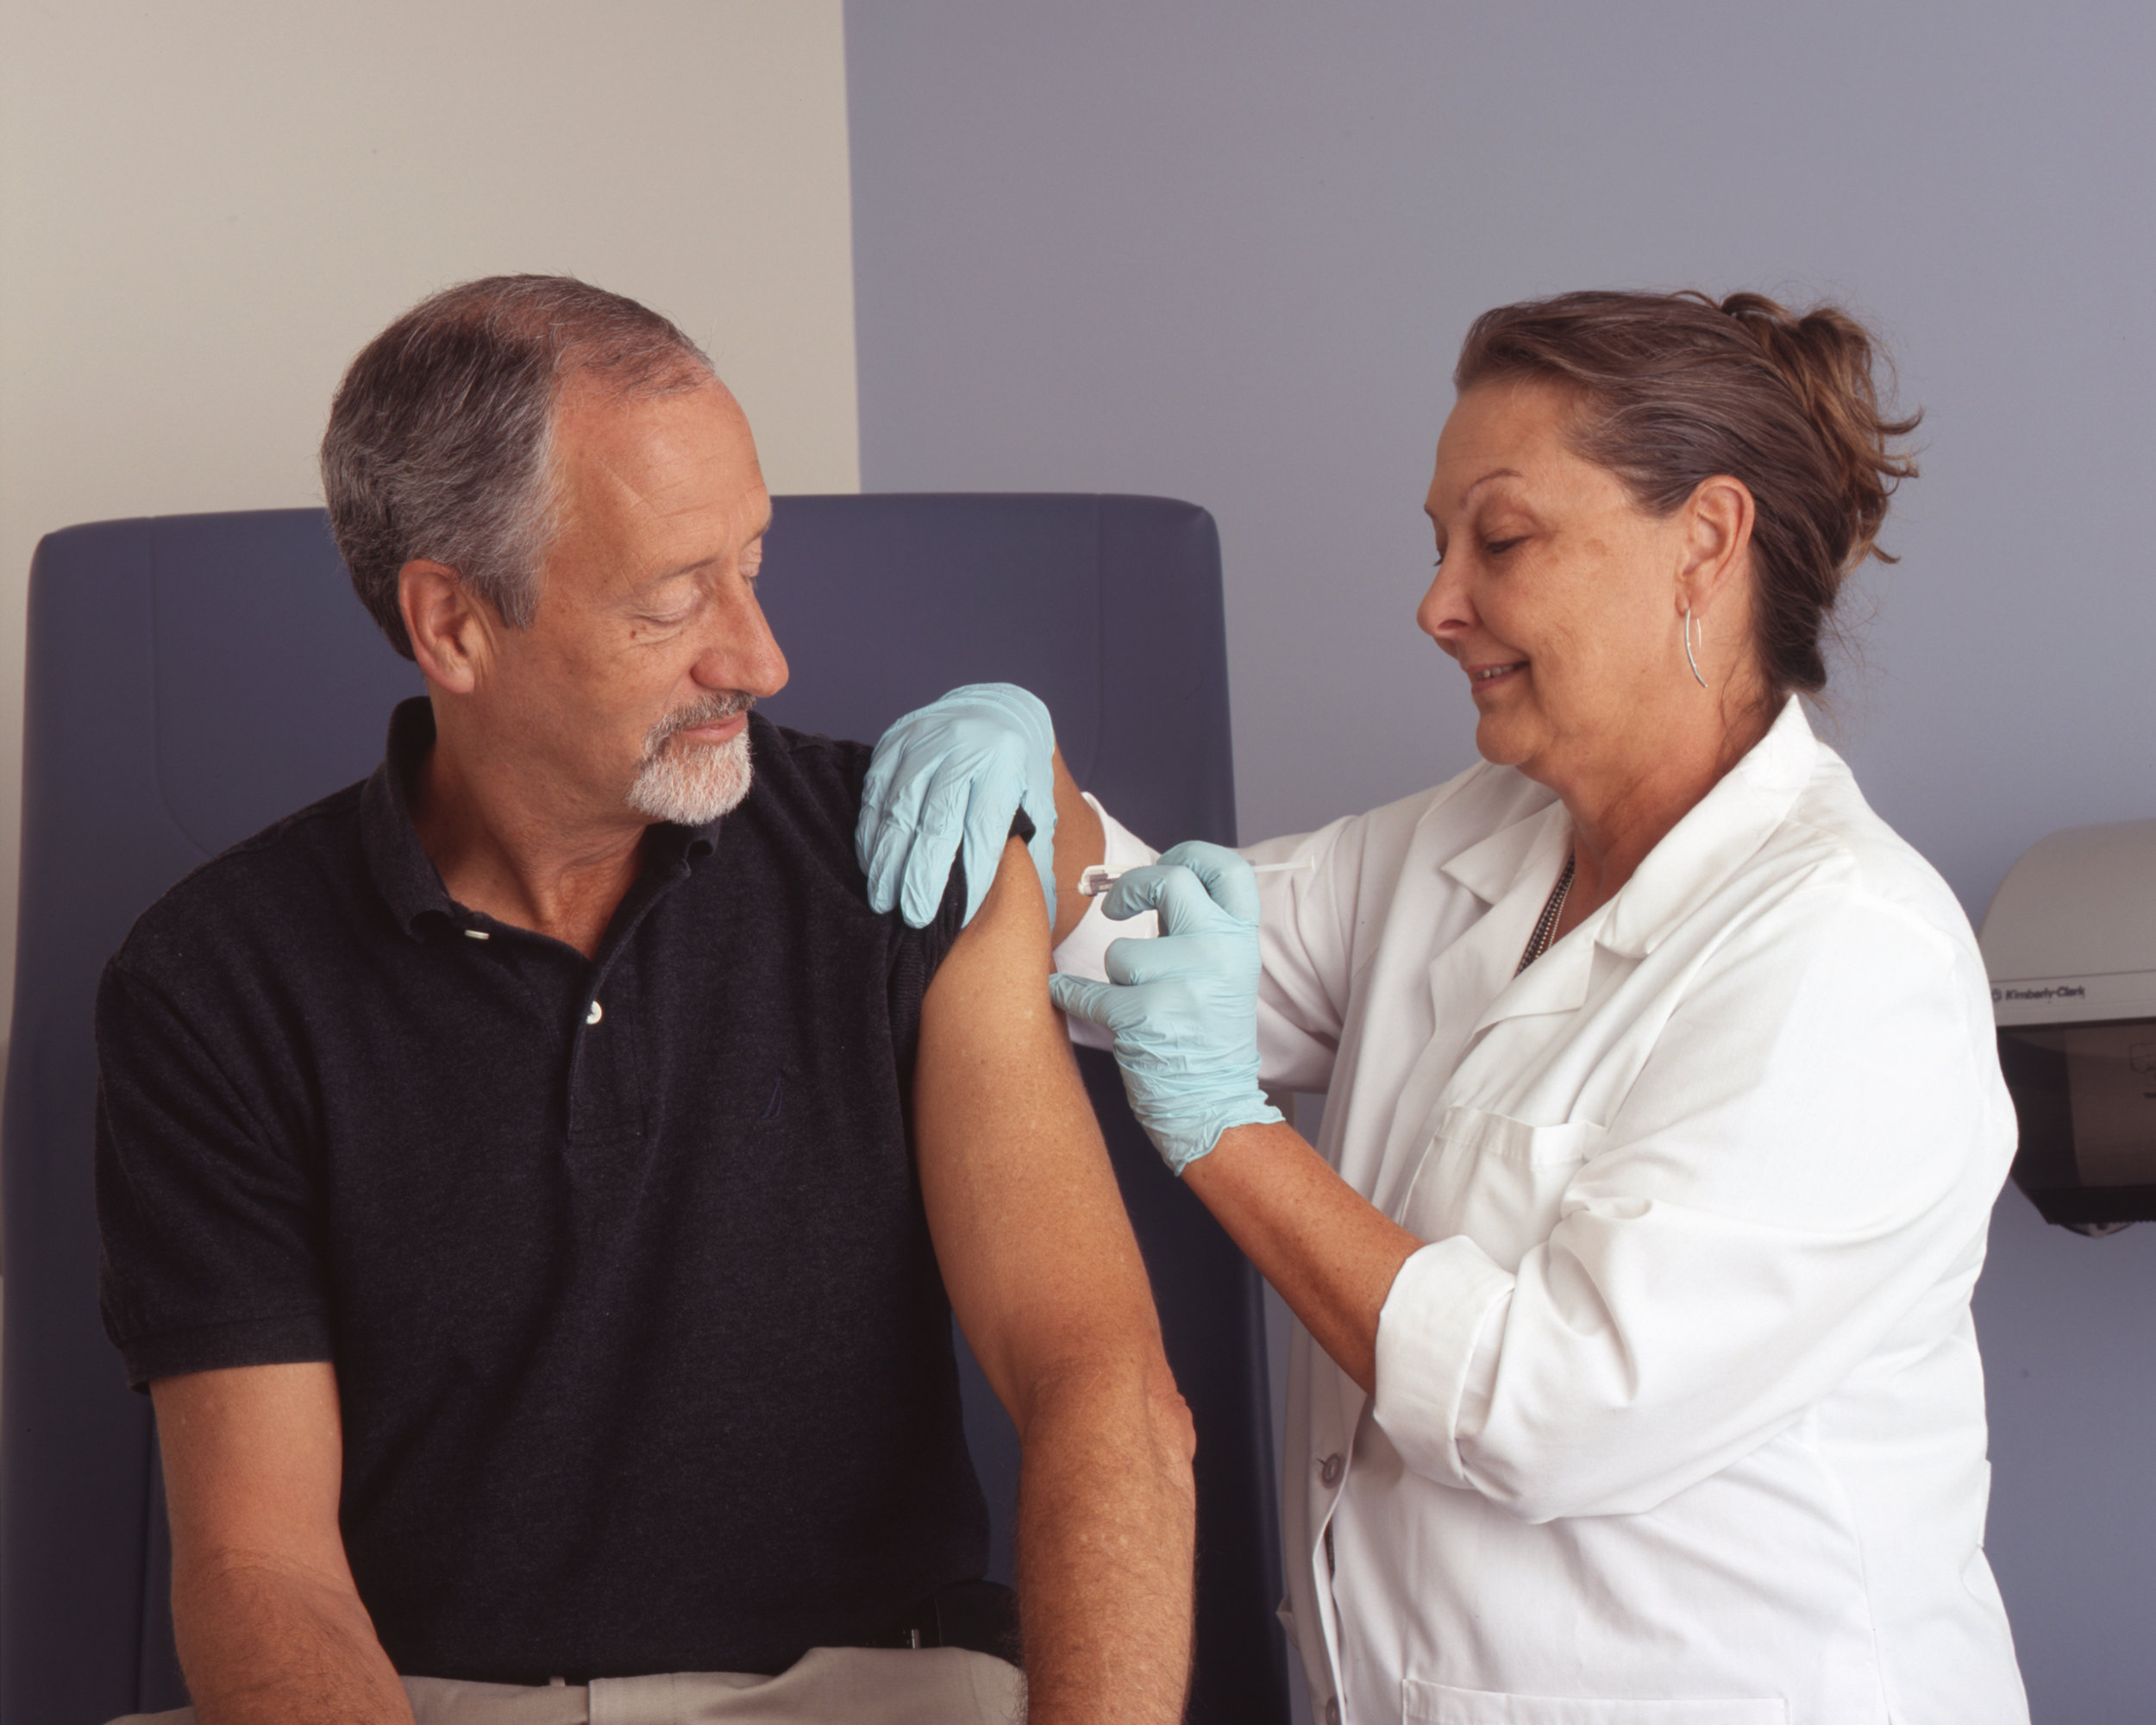 Workplace clinics are an easy way to get immunized